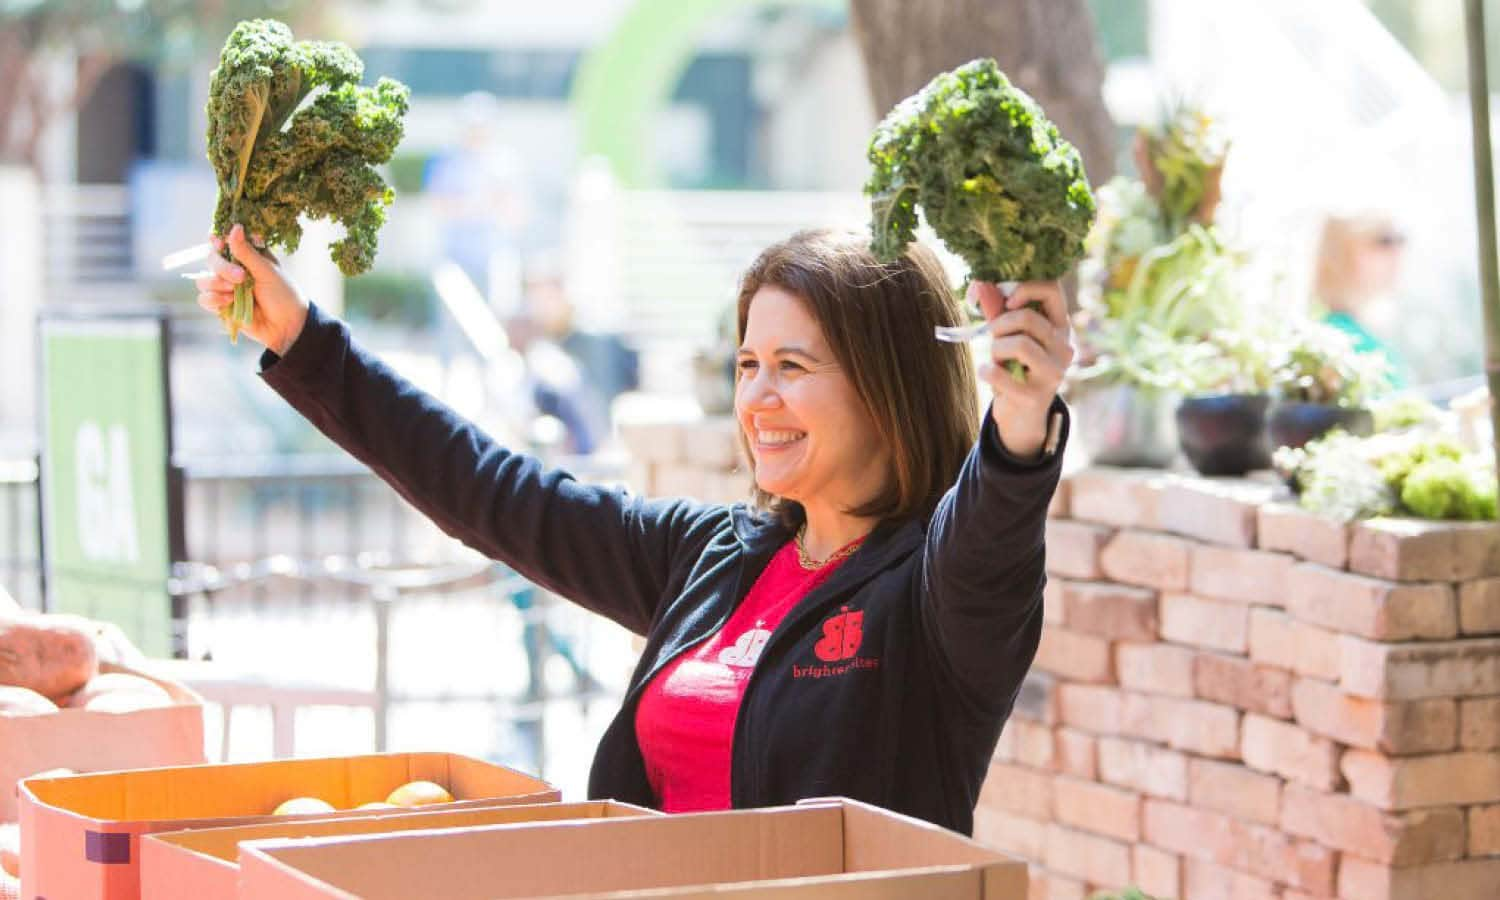 Brighter Bites co-founders Lisa Helfman and Dr. Shreela Sharma provide fresh and healthy food options to families living far away from supermarkets.